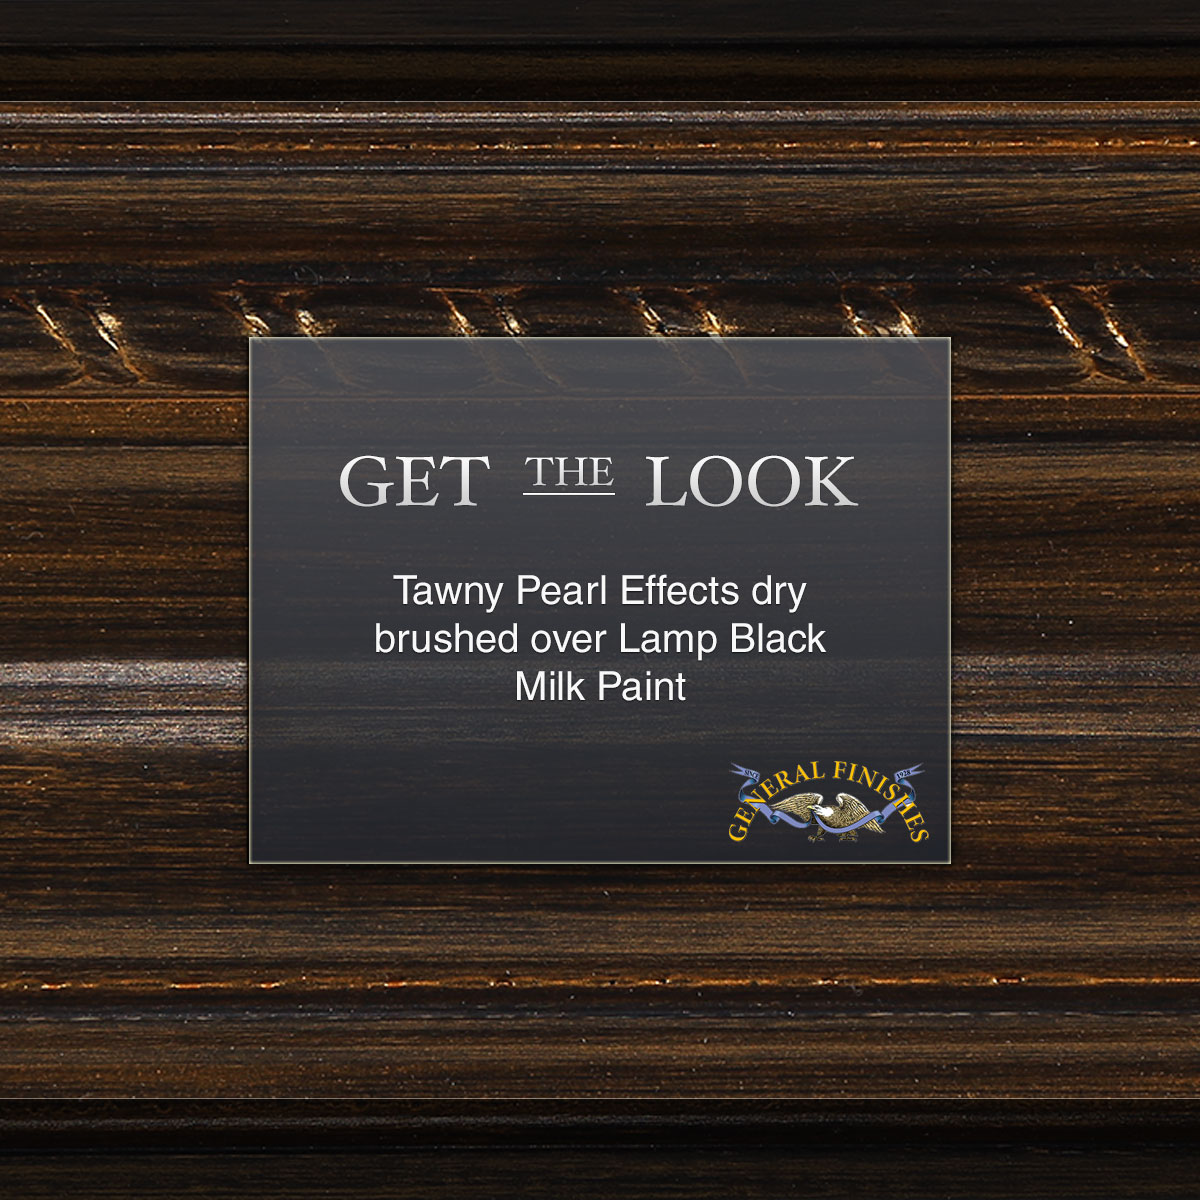 Get The Look Tawny Pearl Effects Over Lamp Black Milk